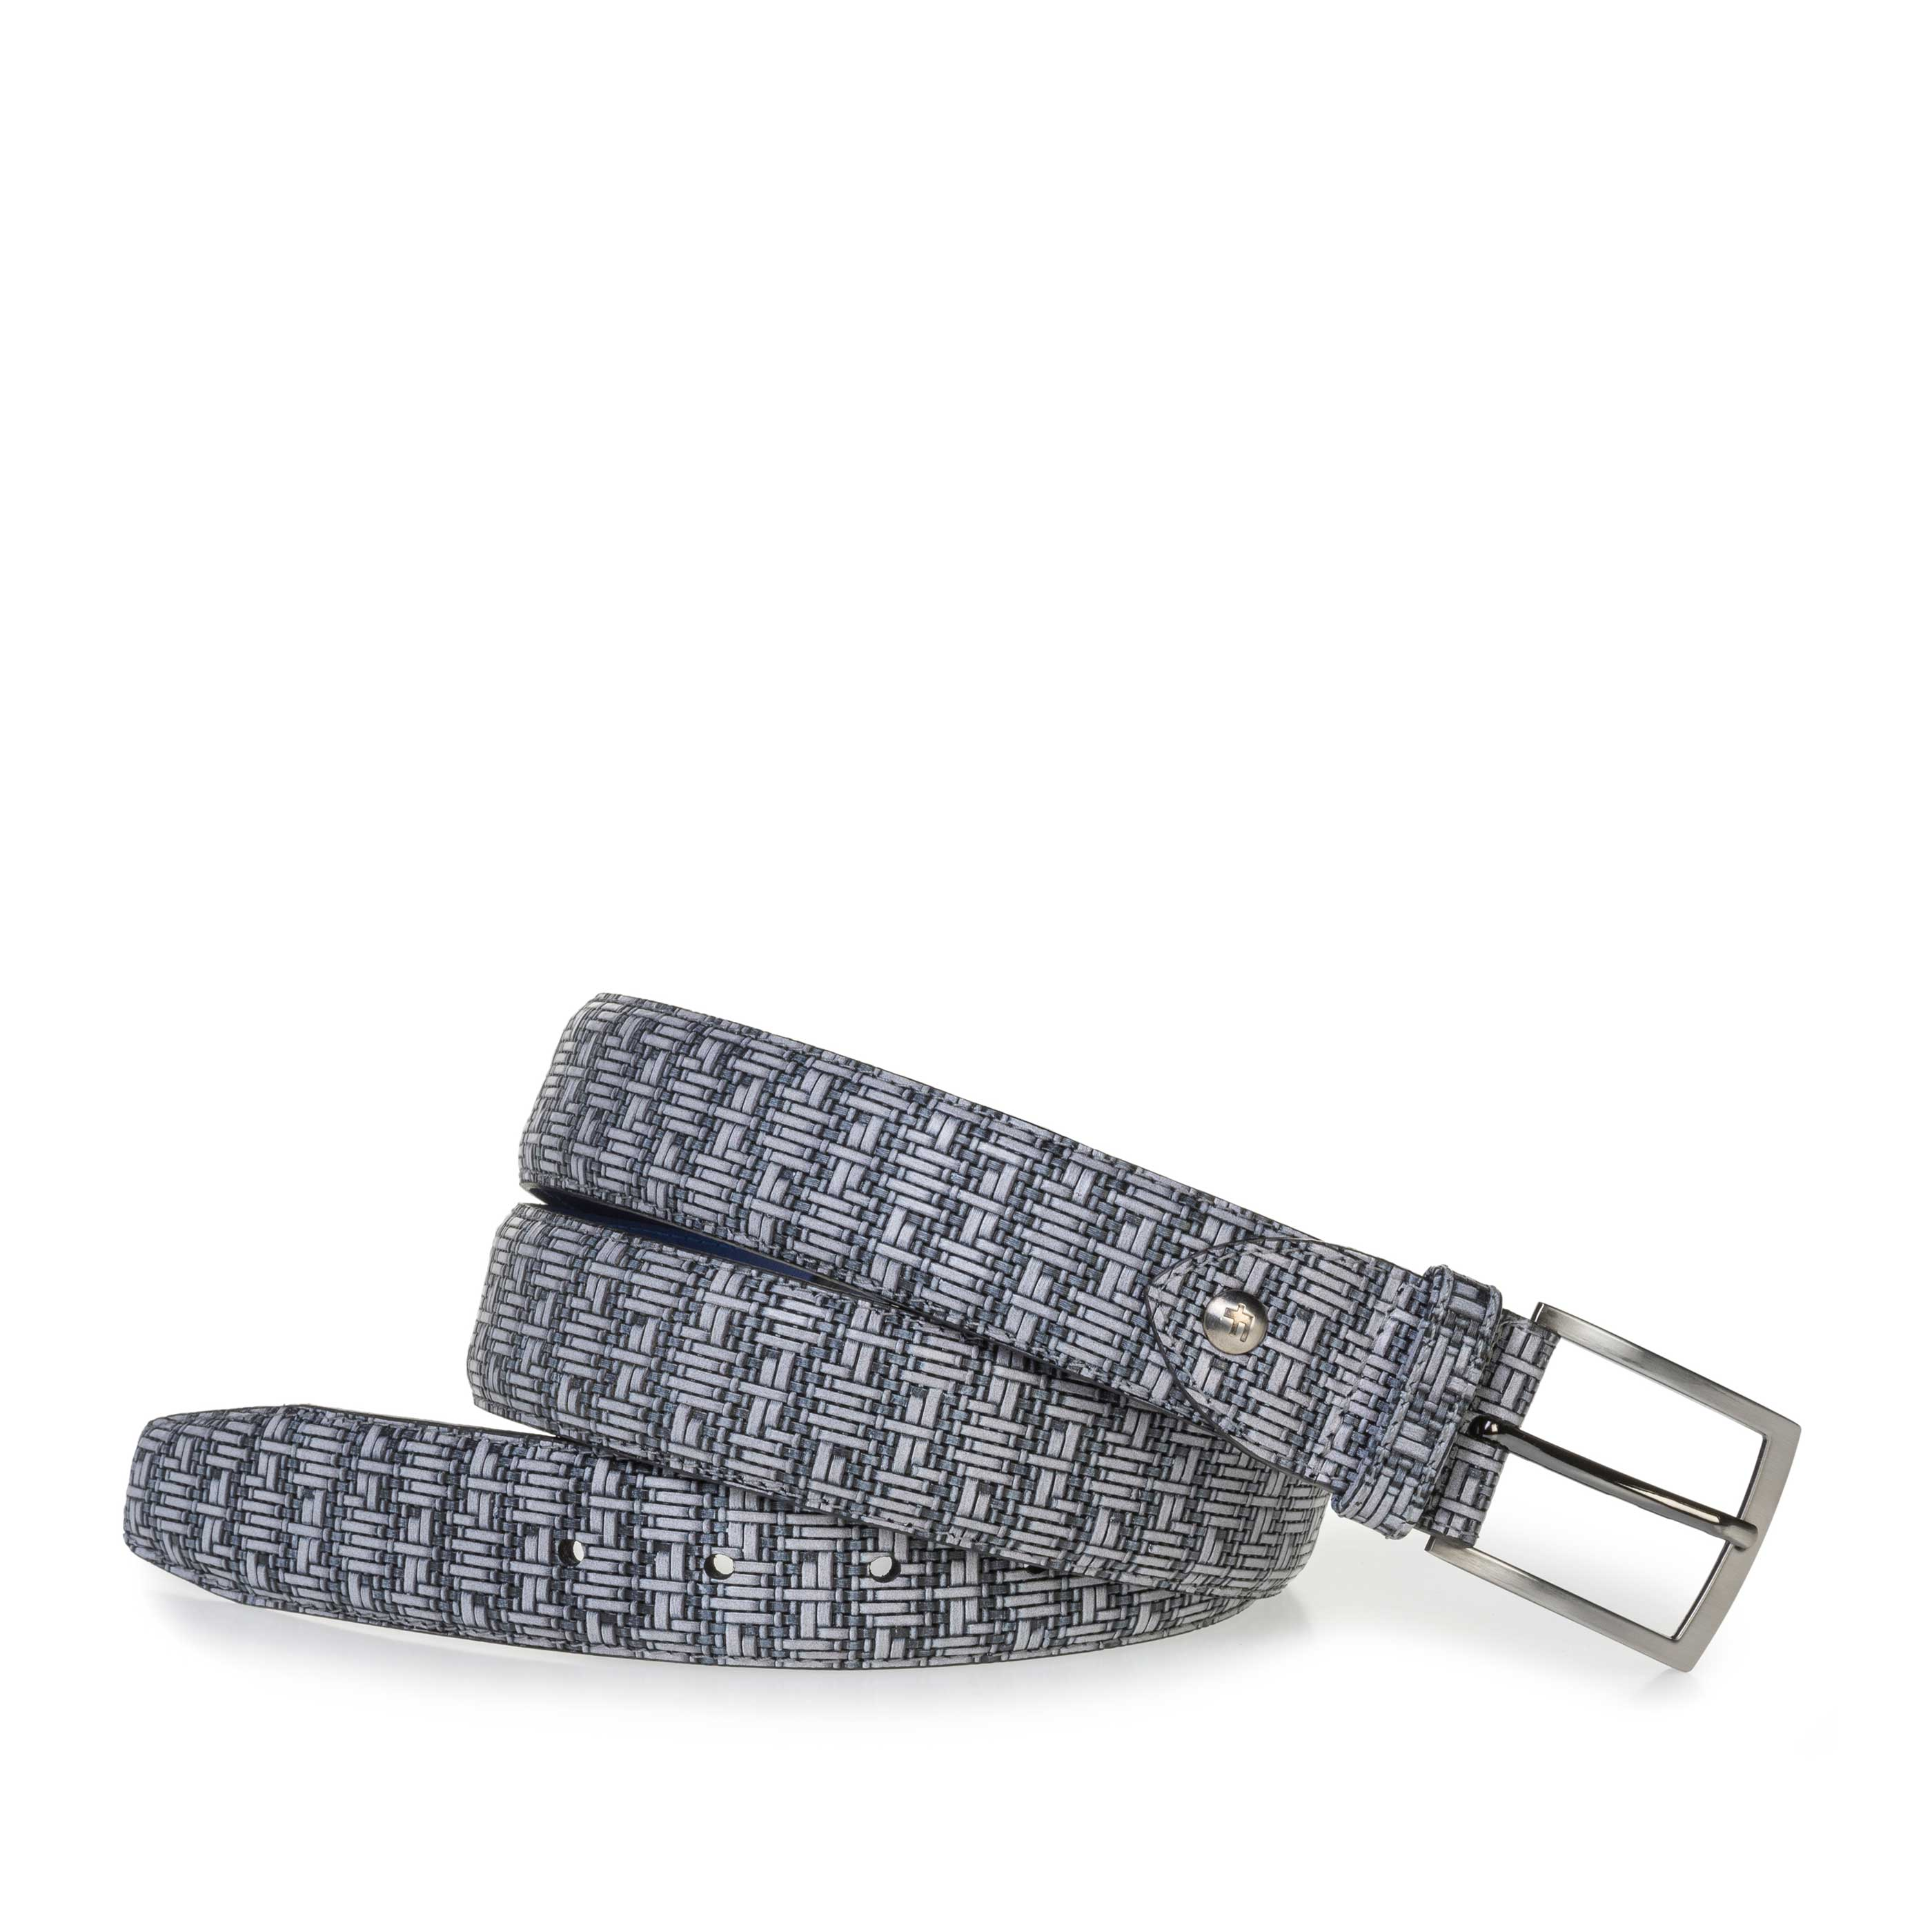 75200/70 - Grey belt with a black graphic print